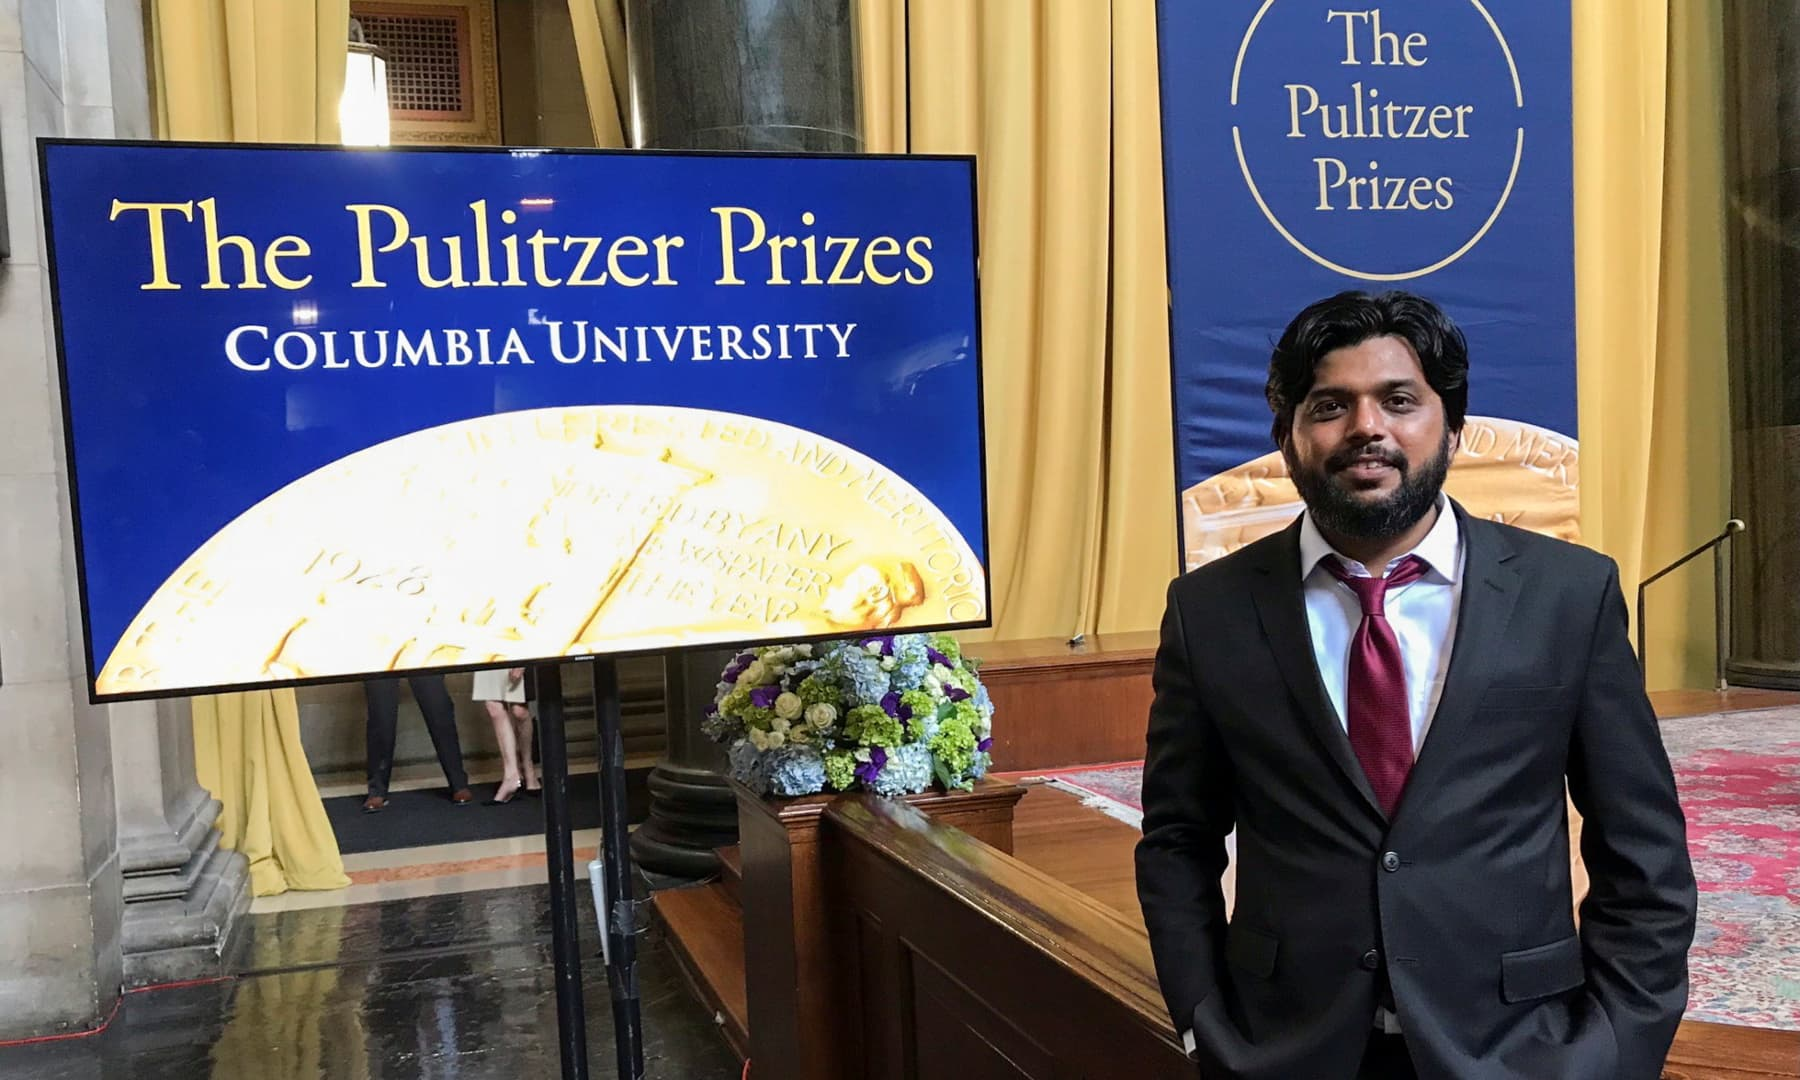 Danish Siddiqui, a Reuters photographer based in India, poses for a picture at Columbia University's Low Memorial Library during the Pulitzer Prize giving ceremony, in New York, US, May 30, 2018. — Reuters